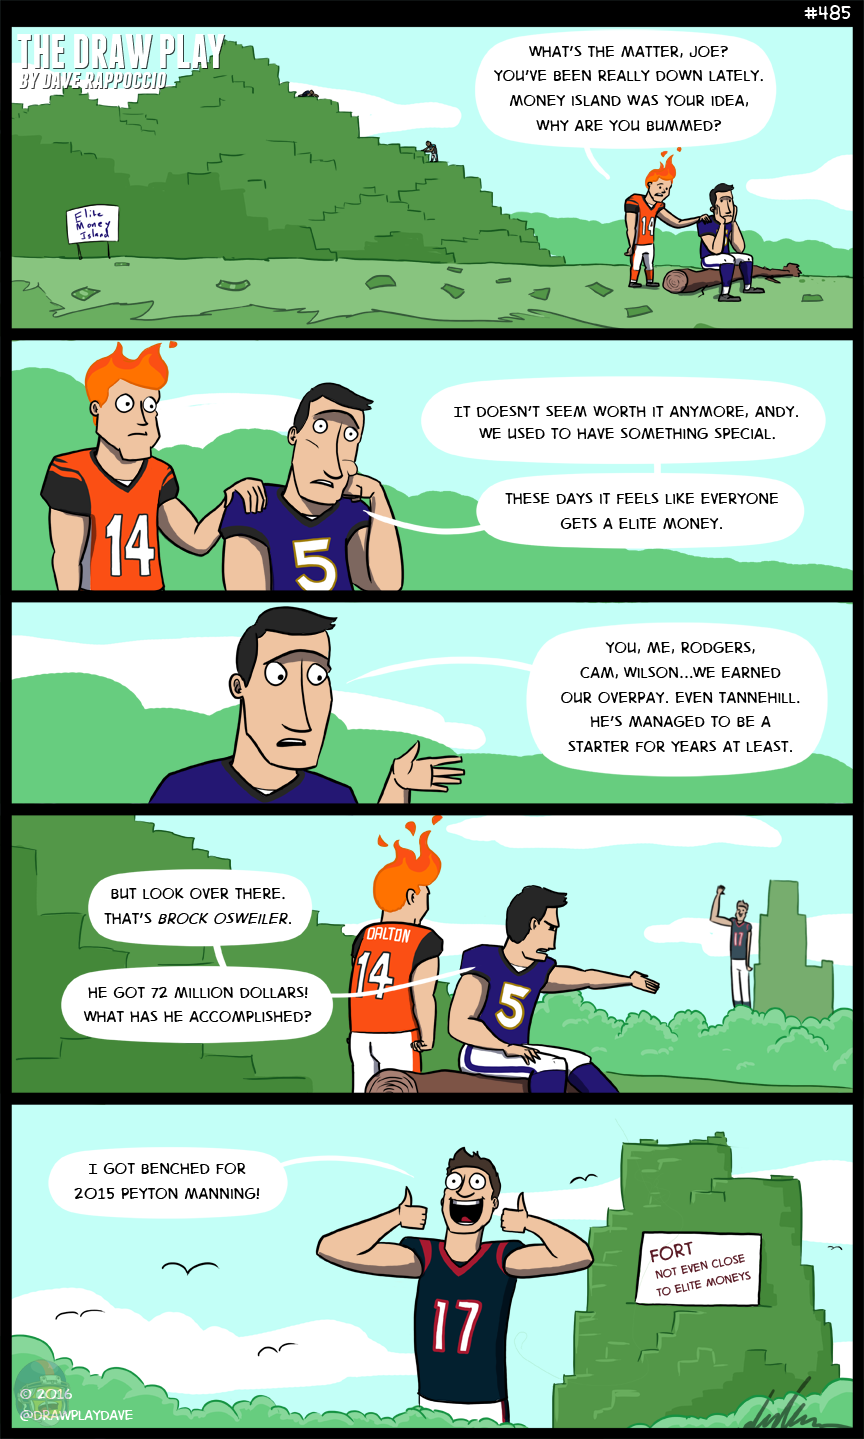 Could Brock Osweiler build a money fort so tall that he himself could not see over it?